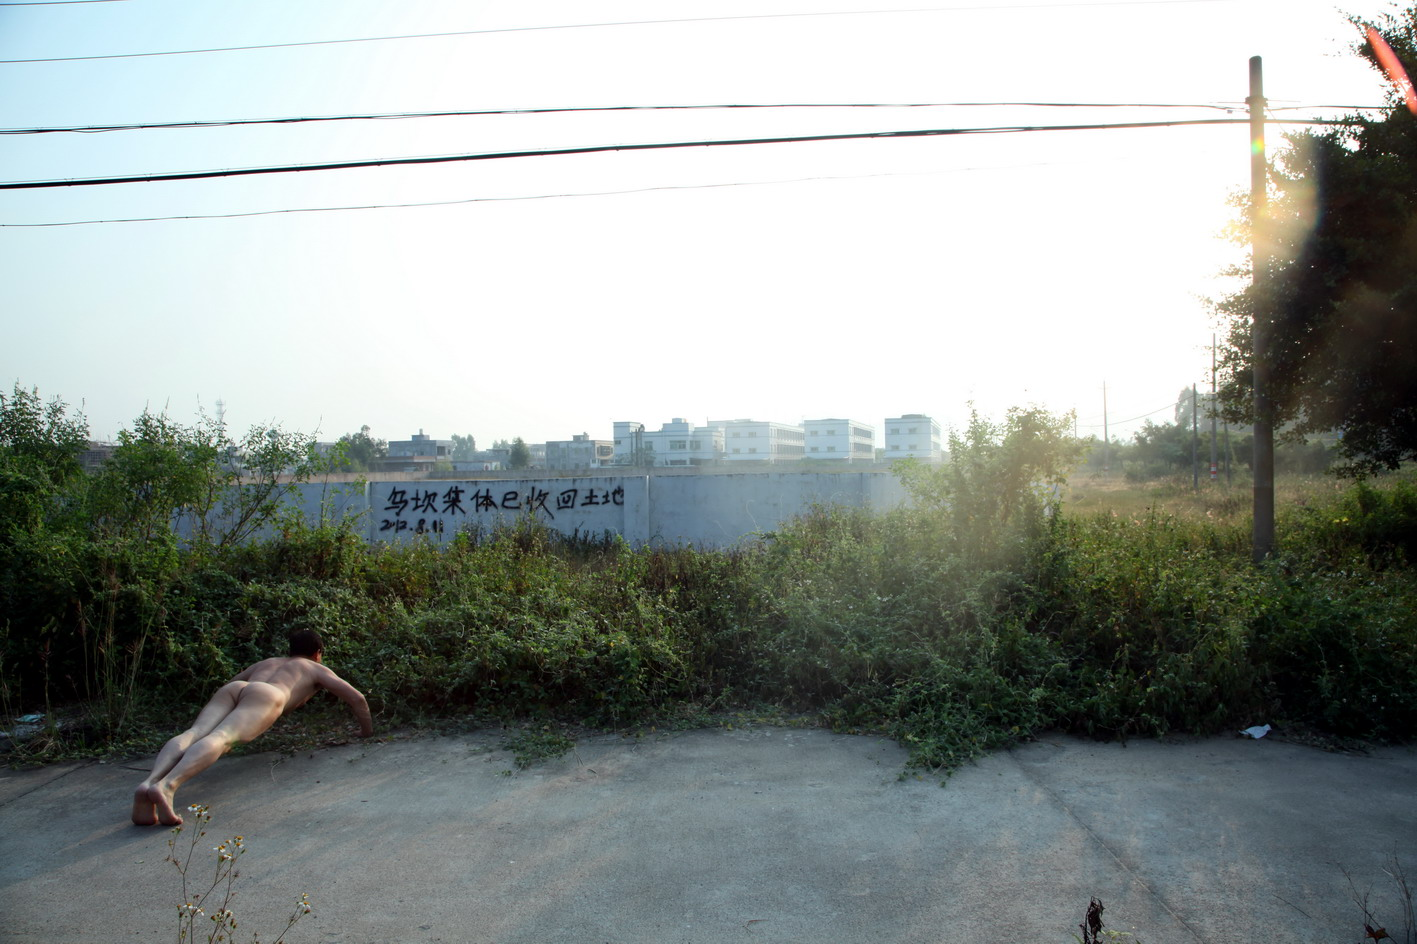 September 21 2011, Guangdong Wuhan Villagers Causing Riots to Show Dissatisfaction